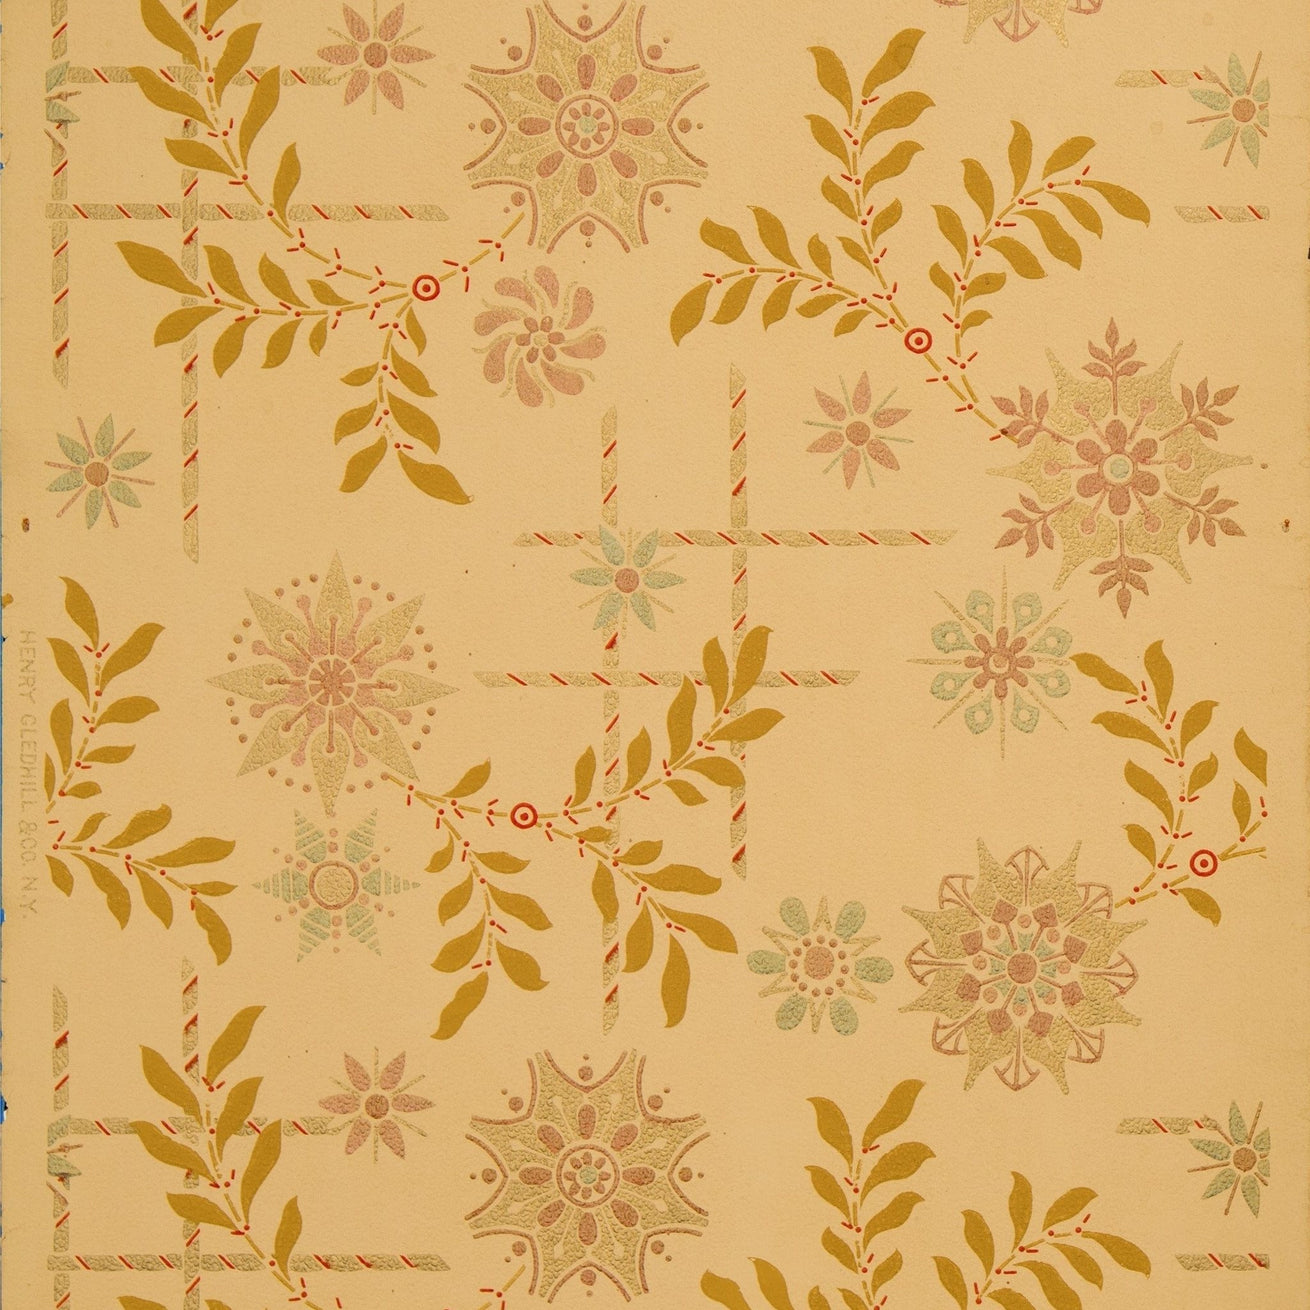 Conventionalized Florets with Leaves - Antique Wallpaper Remnant